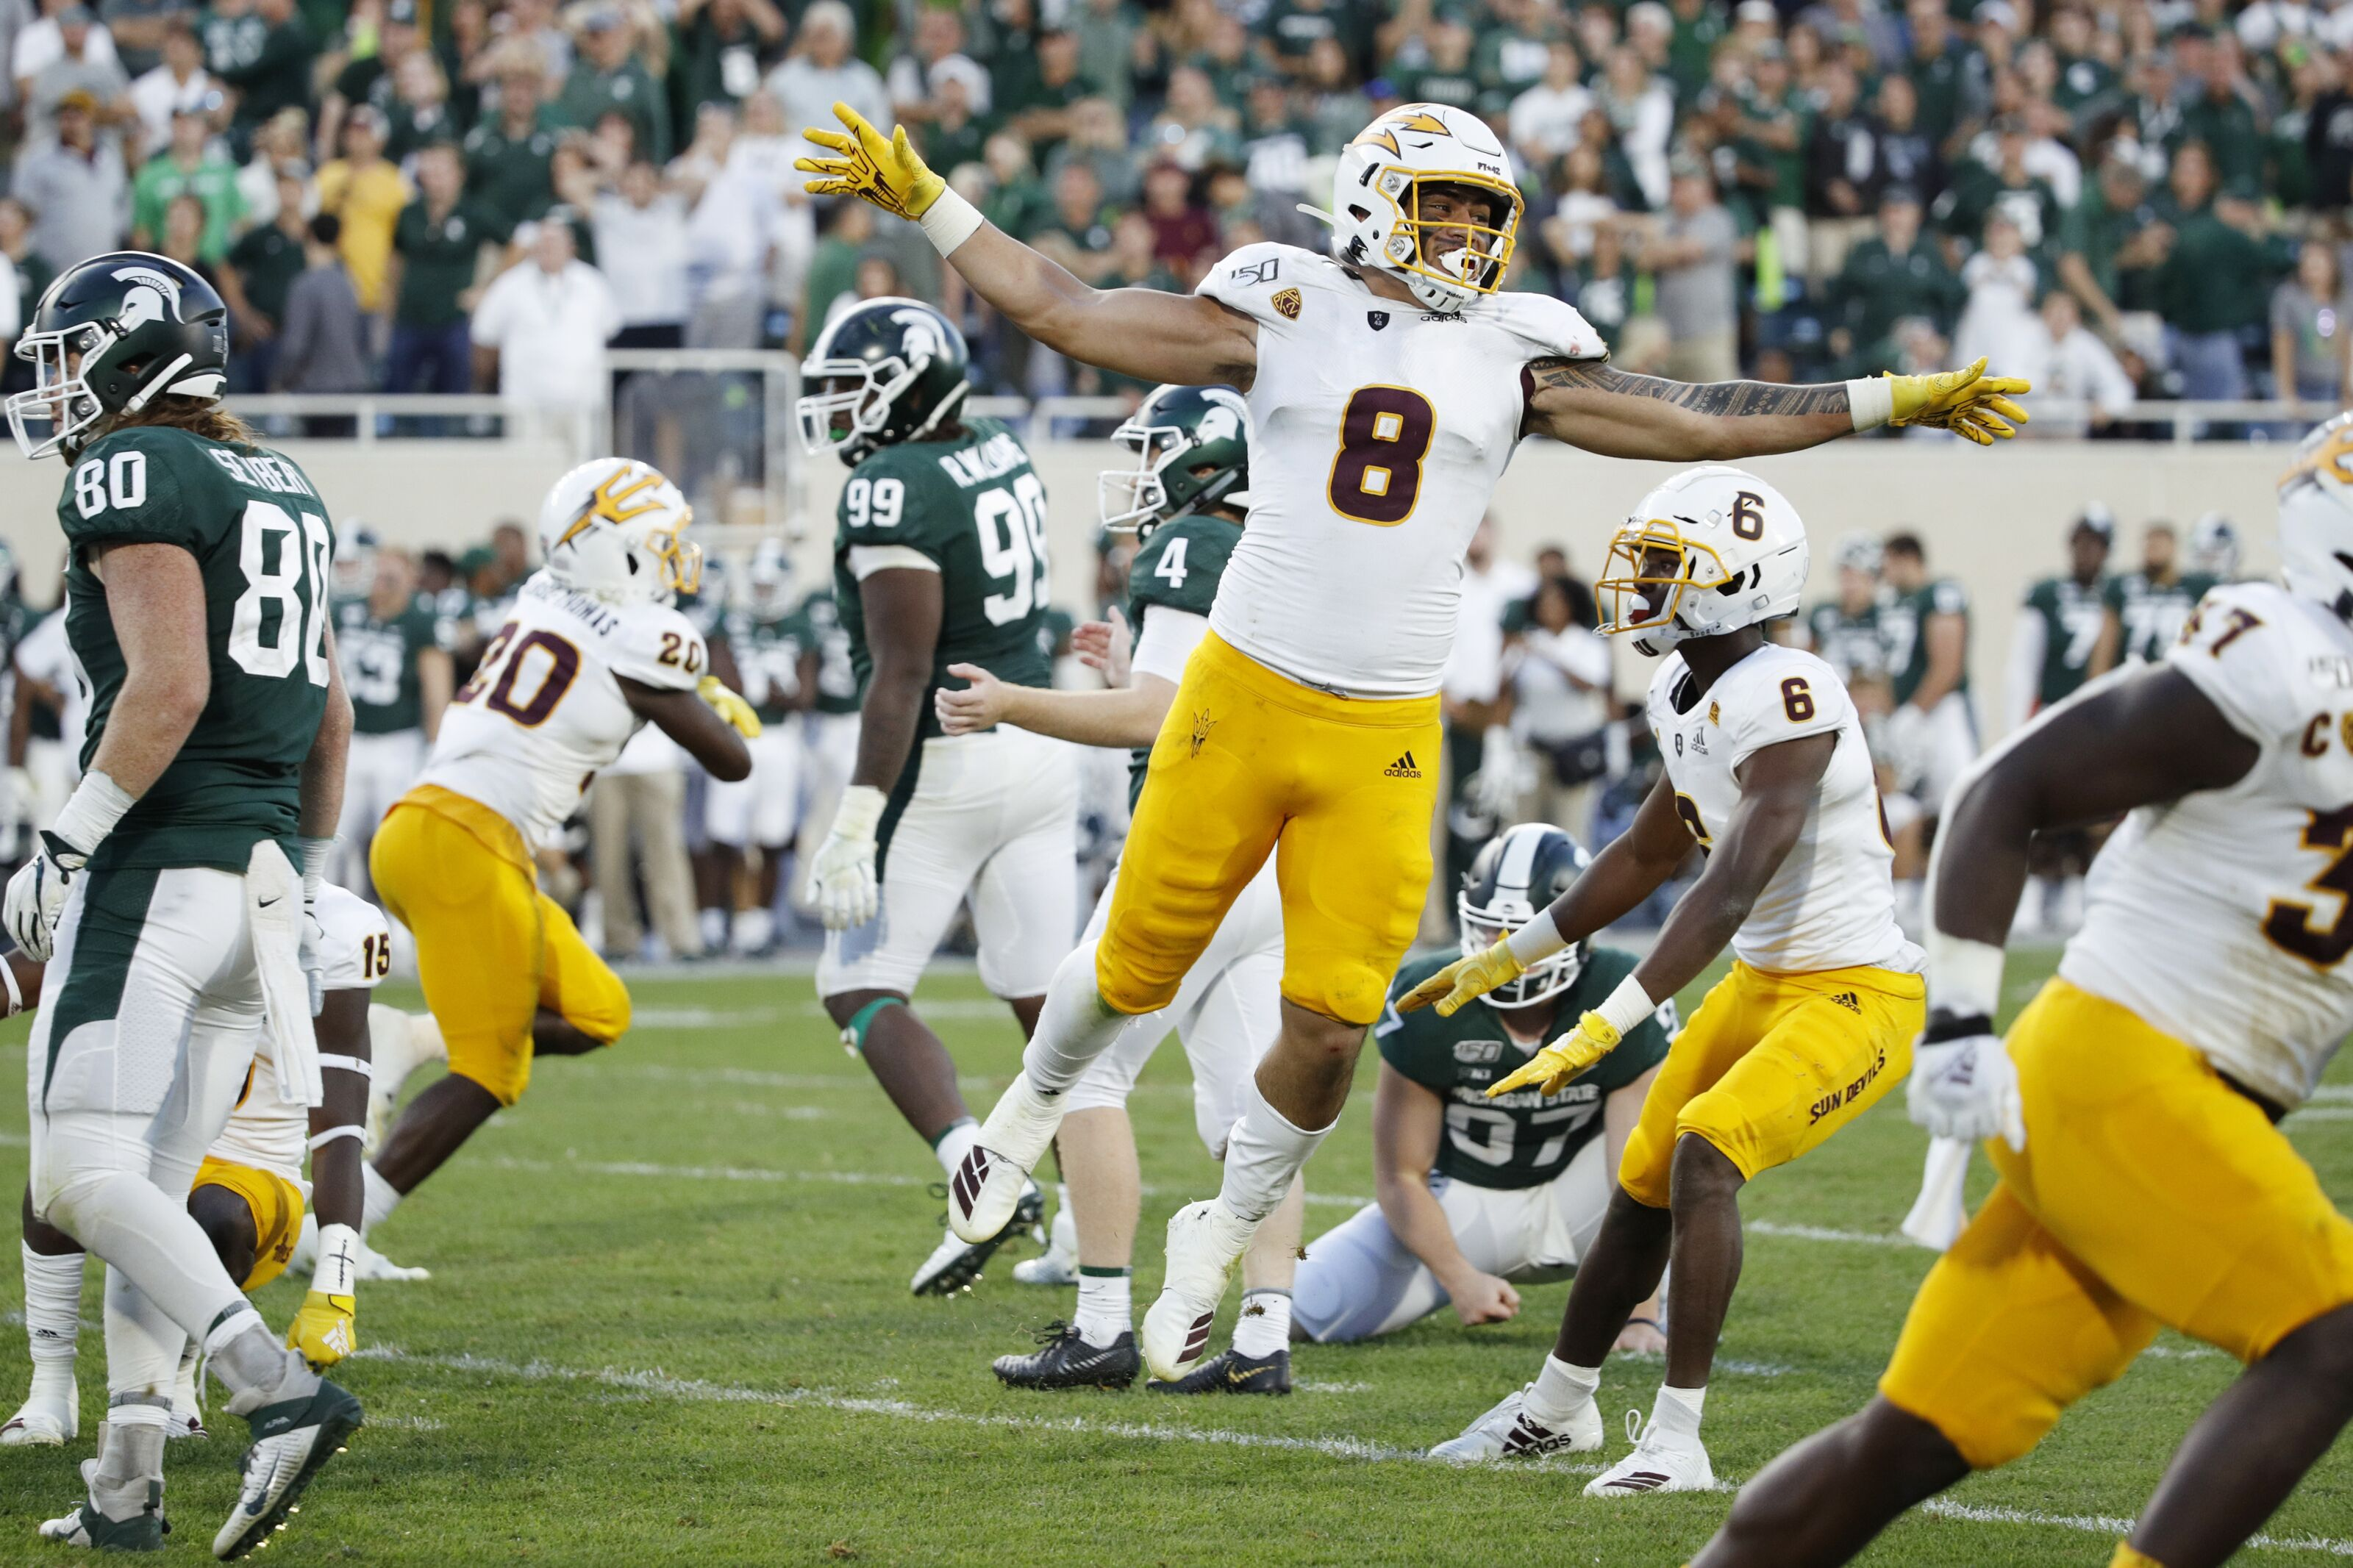 Michigan State Football: Refs admit crucial mistake in Arizona State game